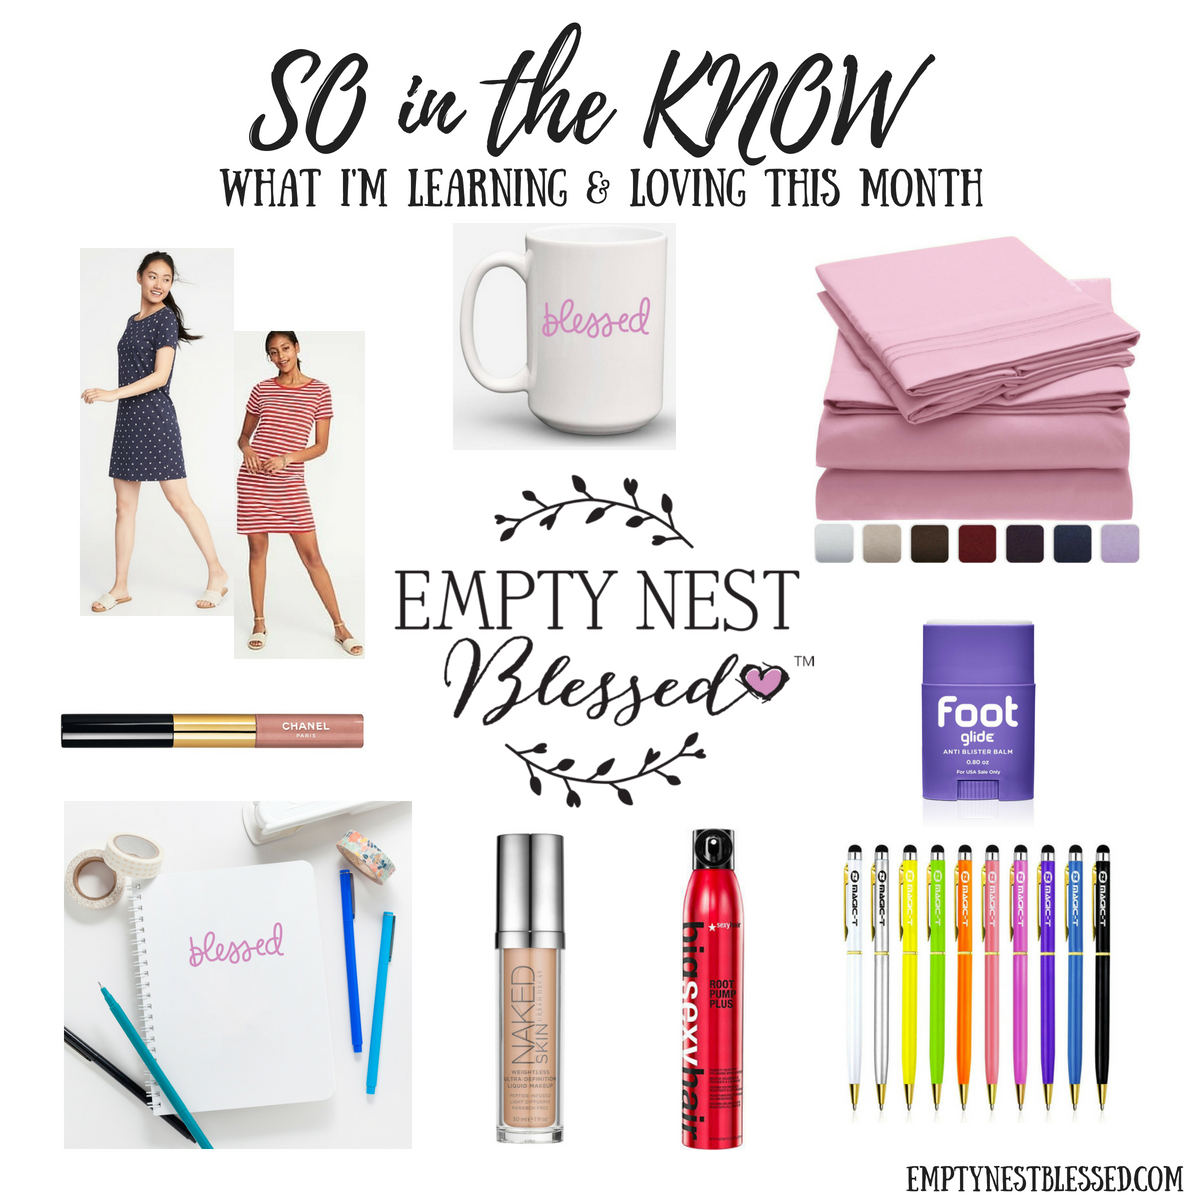 SO in the KNOW – What I'm Learning & Loving in June